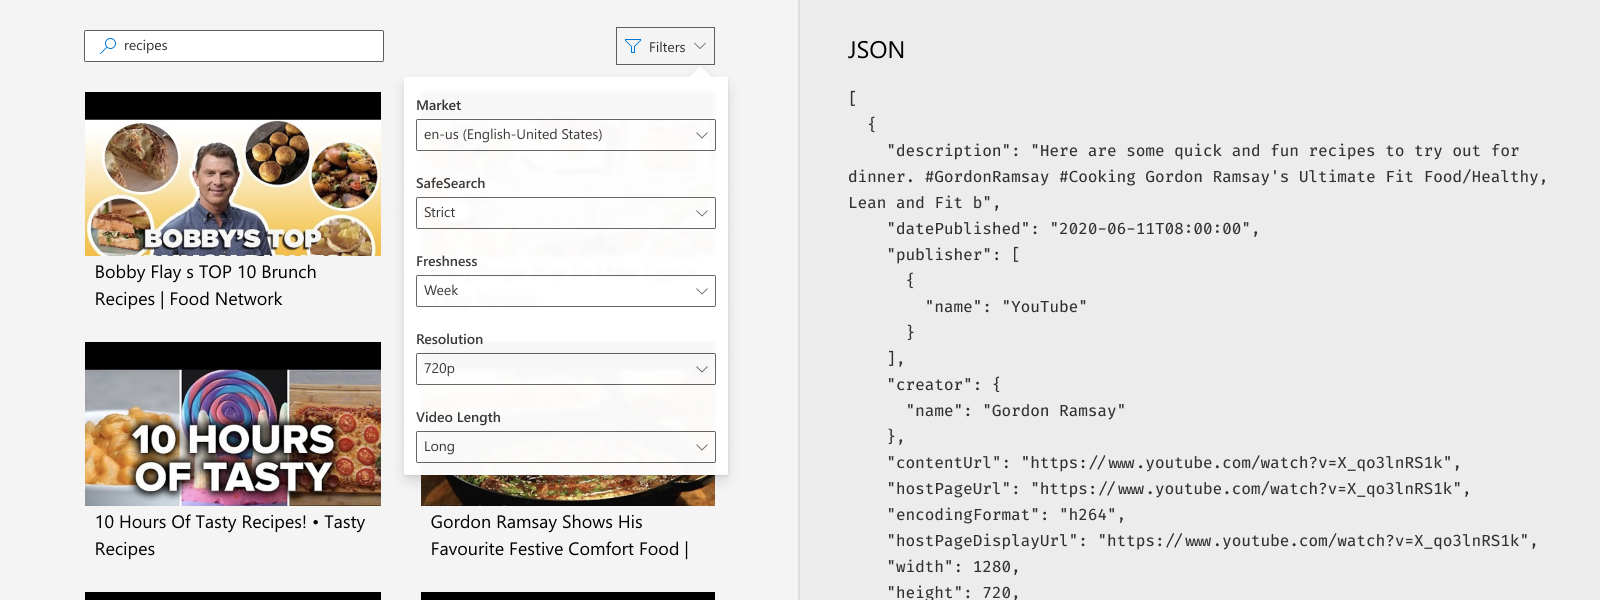 Illustrates using filters such as freshness, resolution, and size in a video search request.